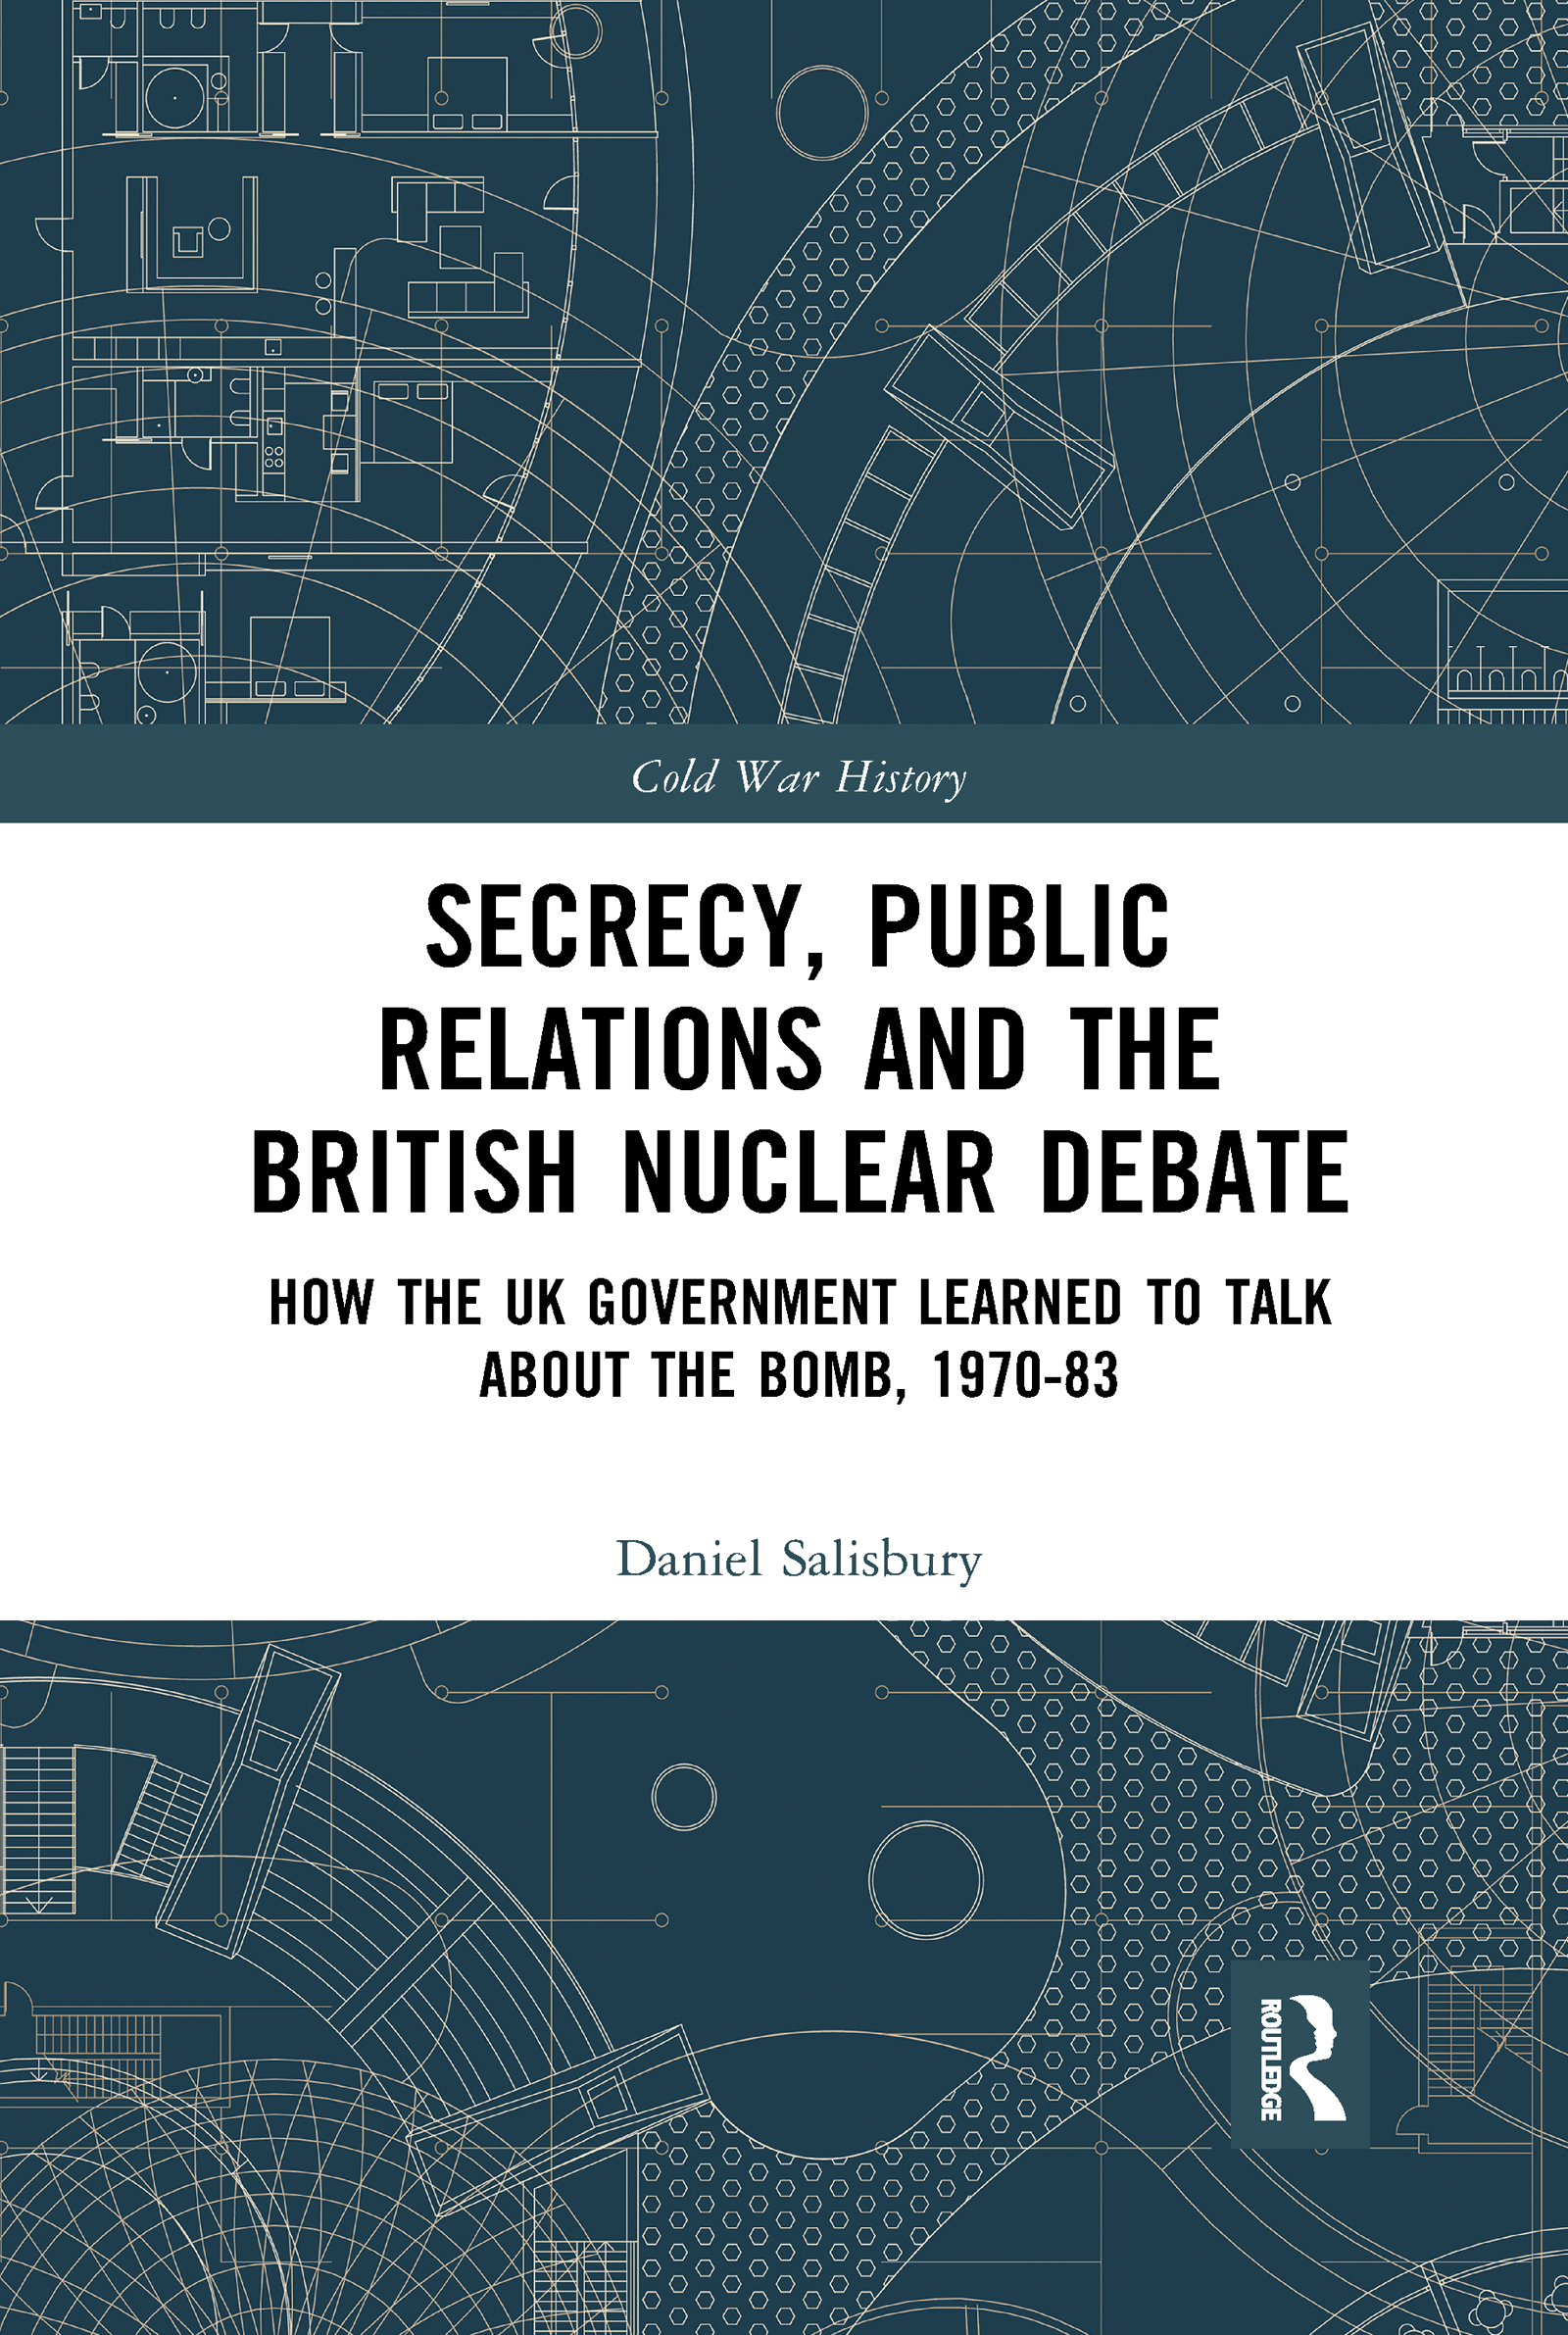 Secrecy, Public Relations and the British Nuclear Debate